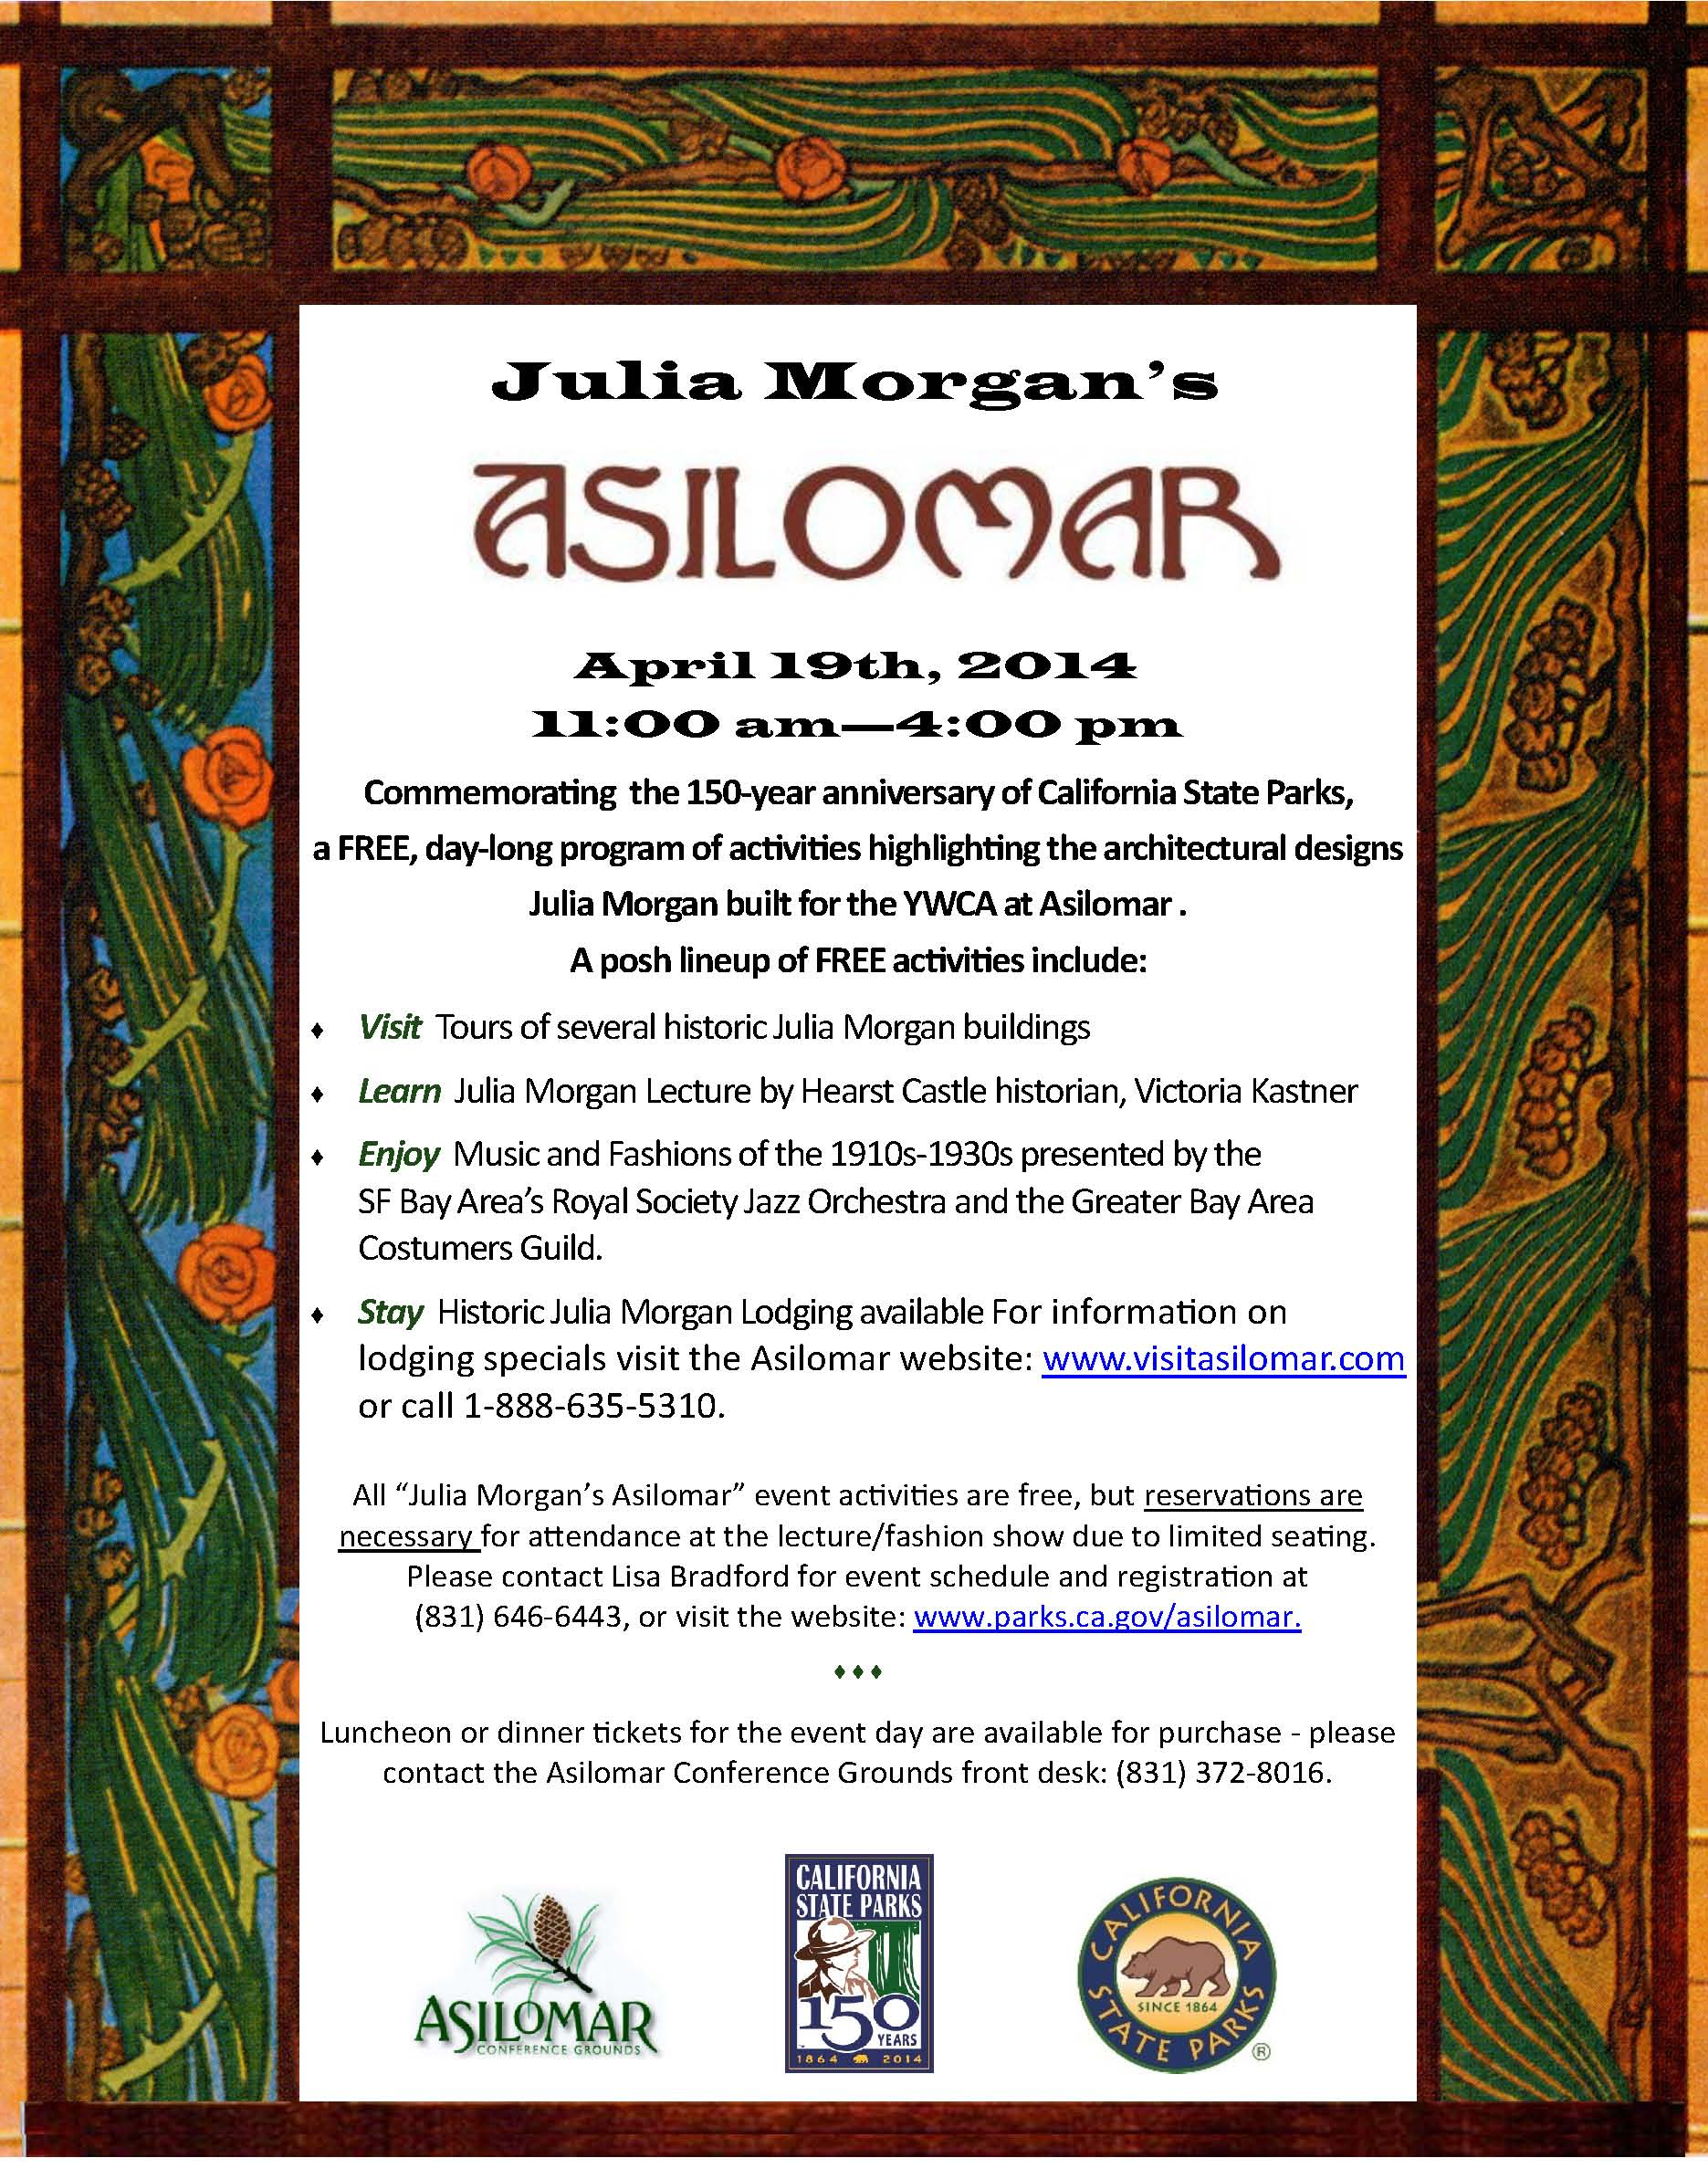 Julia Morgan's Asilomar